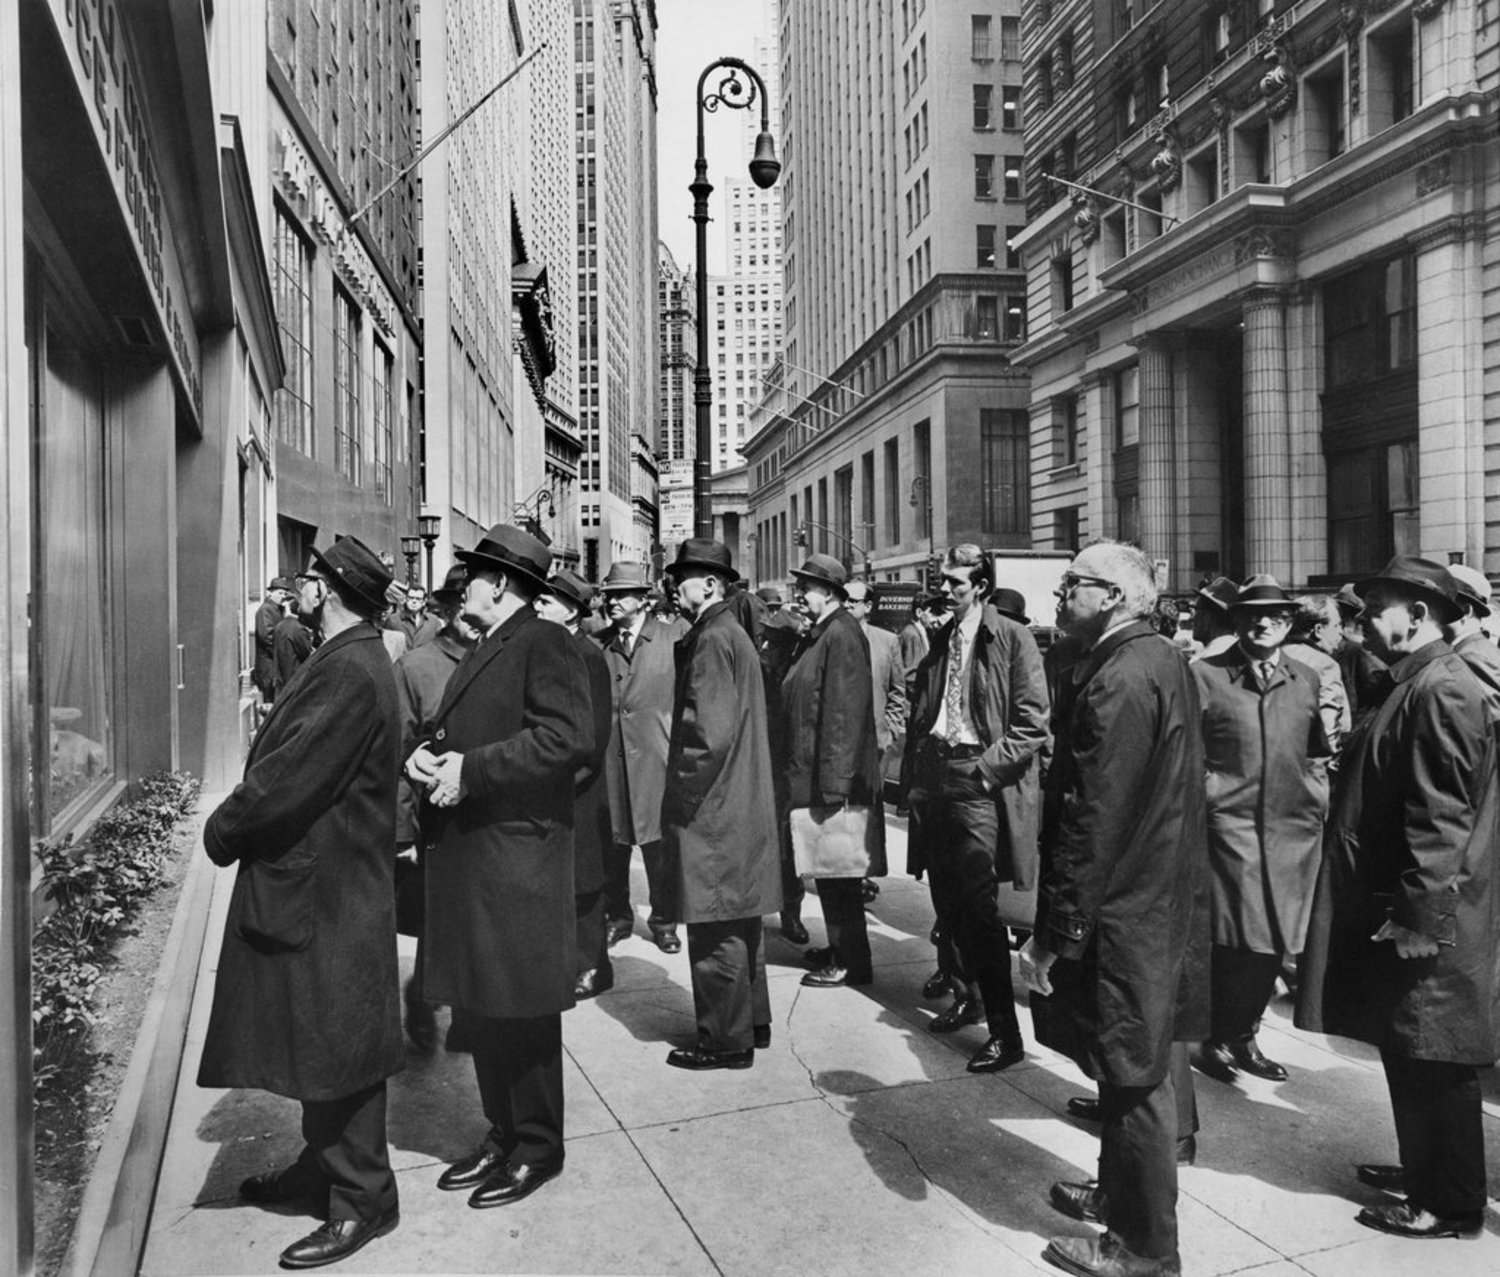 """April 1, 1968: Stock-watchers observed the numbers on Broad Street, which showed signs of good news """"as securities markets around the world generally placed a bullish tag on President Johnson's bid for peace in Vietnam,"""" reported The Times. """"Brokers said that markets hungering for good news in recent months seized upon the speech Sunday night by President Johnson,"""" which called for a halt to bombing in Vietnam and invited its government to """"join him in a 'series of mutual moves toward peace.' """" The war lasted until 1975."""